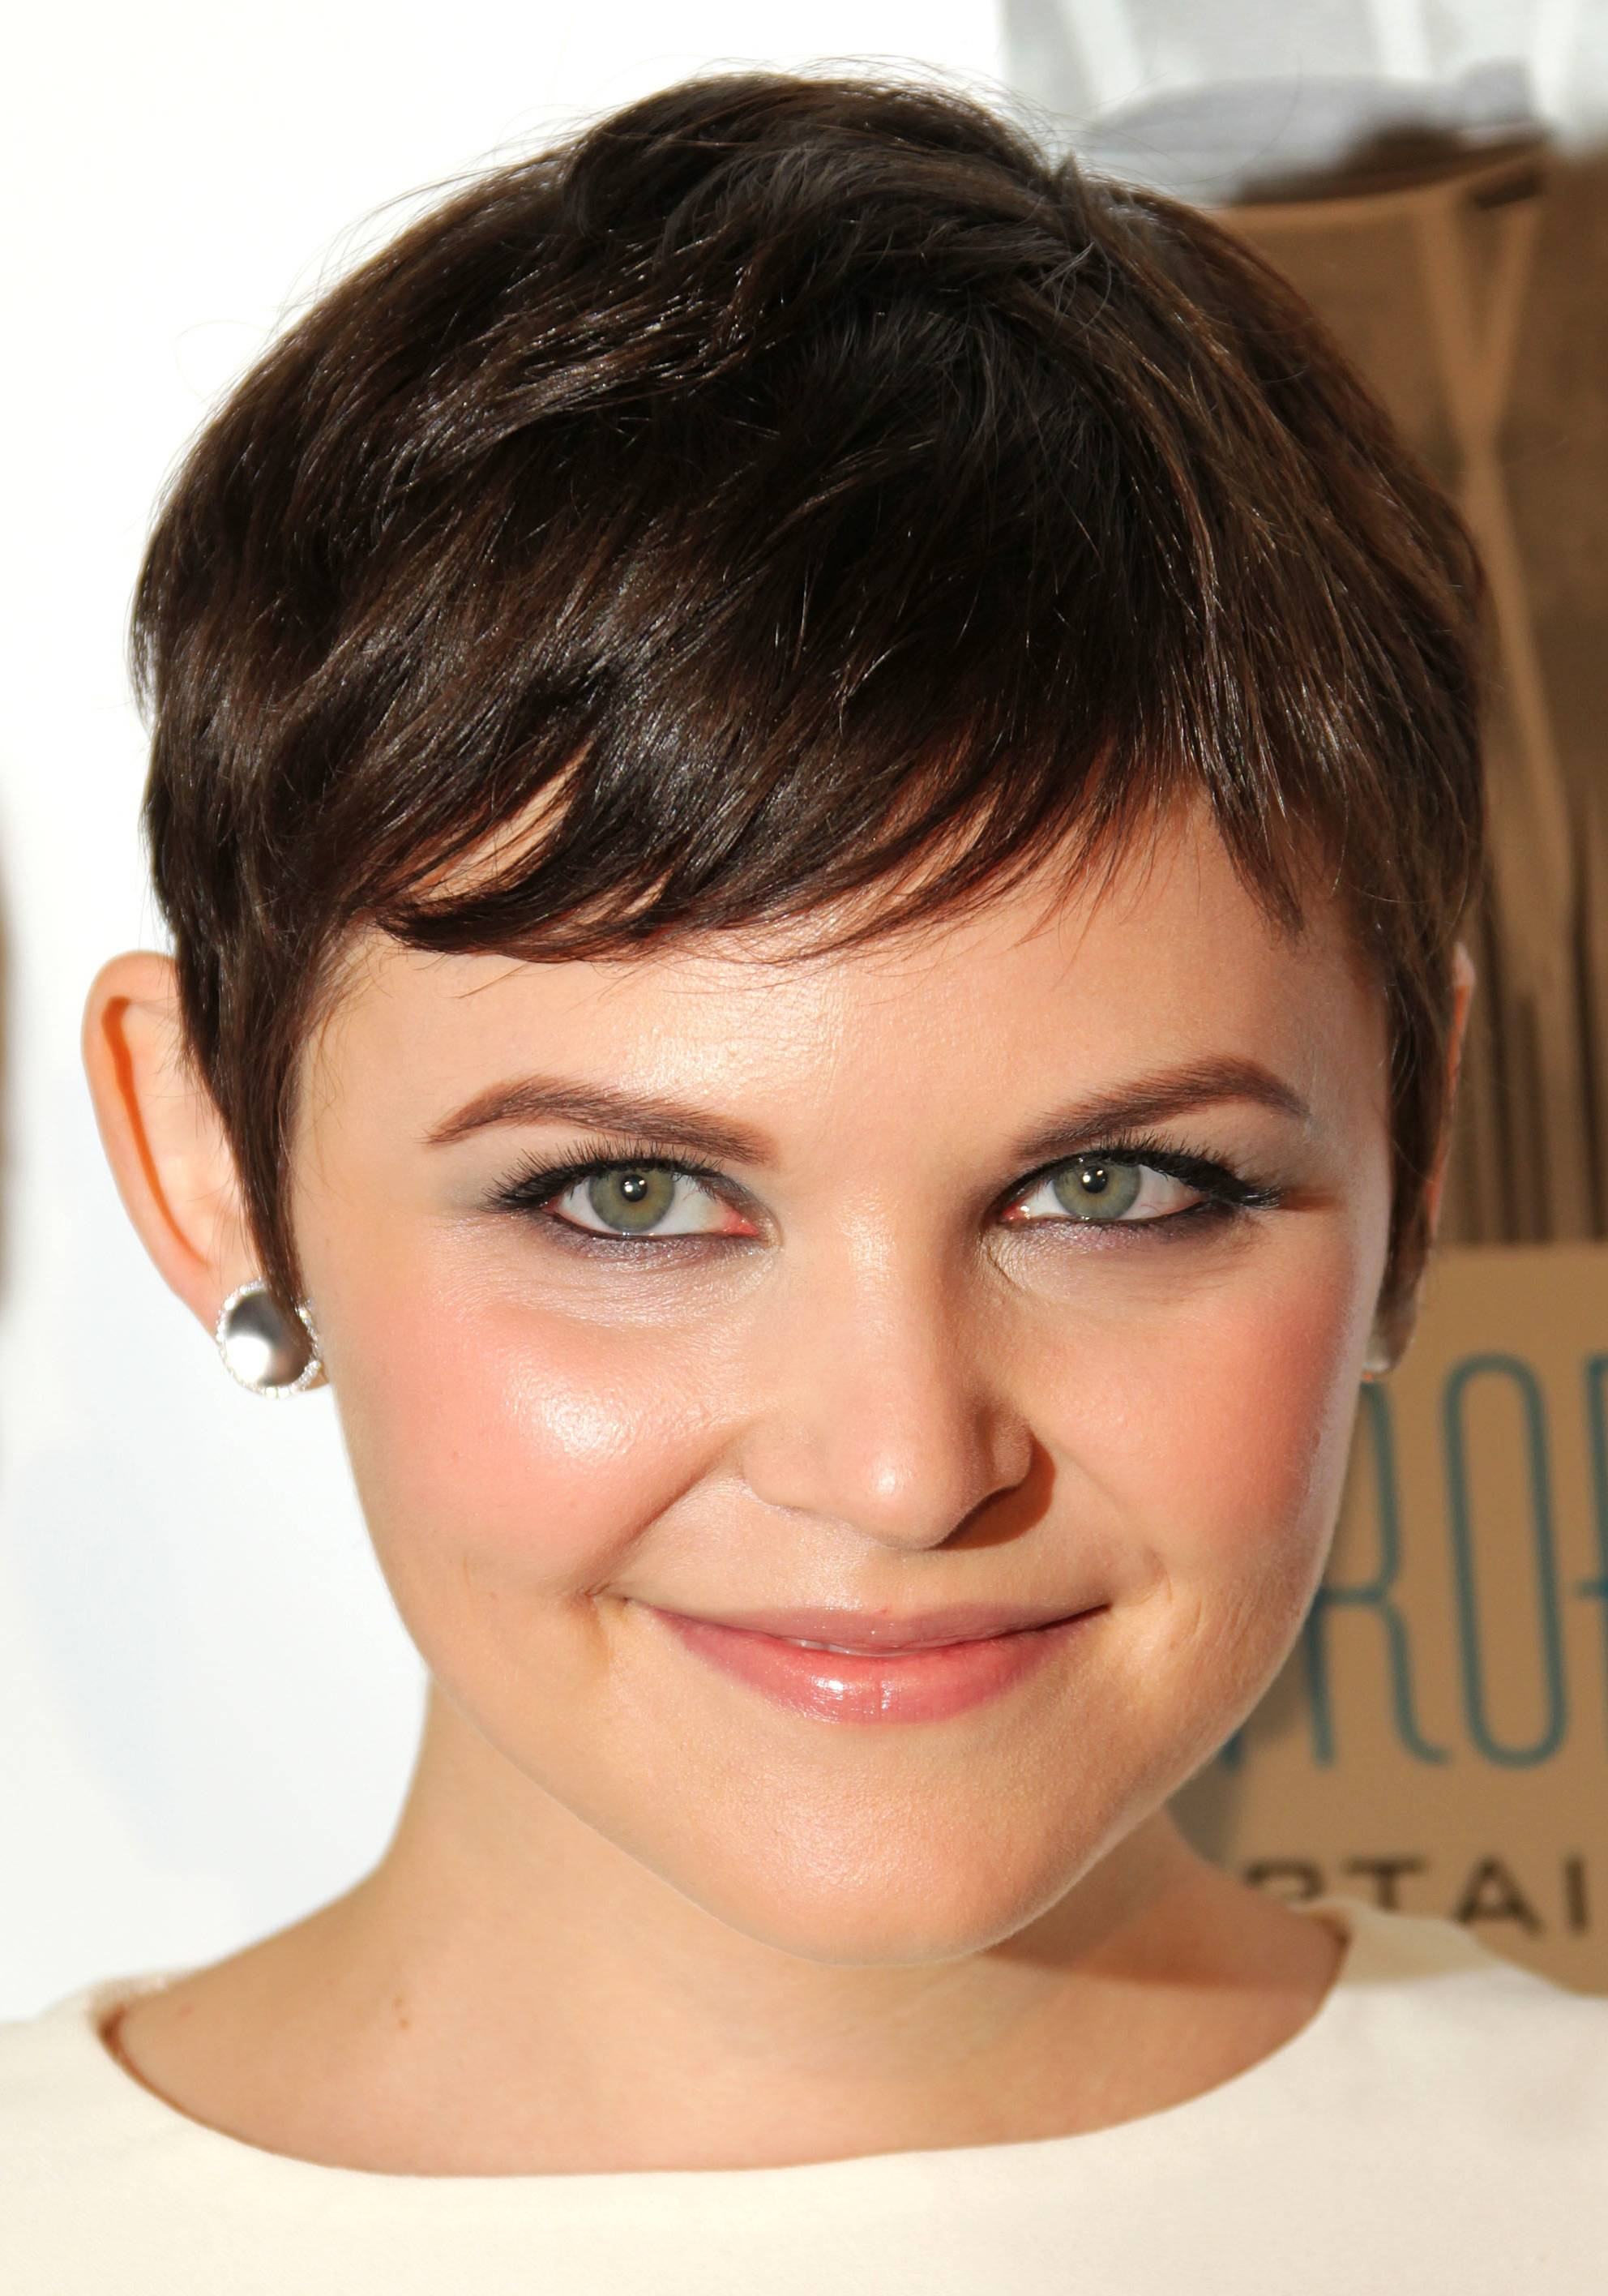 BEVERLY HILLS, CA - OCTOBER 08:  Actress Ginnifer Goodwin attends the Sixth annual Gay and Lesbian and Straight Education Network Respect Awards at the Beverly Hills Hotel on October 8, 2010 in Beverly Hills, California.  (Photo by Frederick M. Brown/Getty Images)